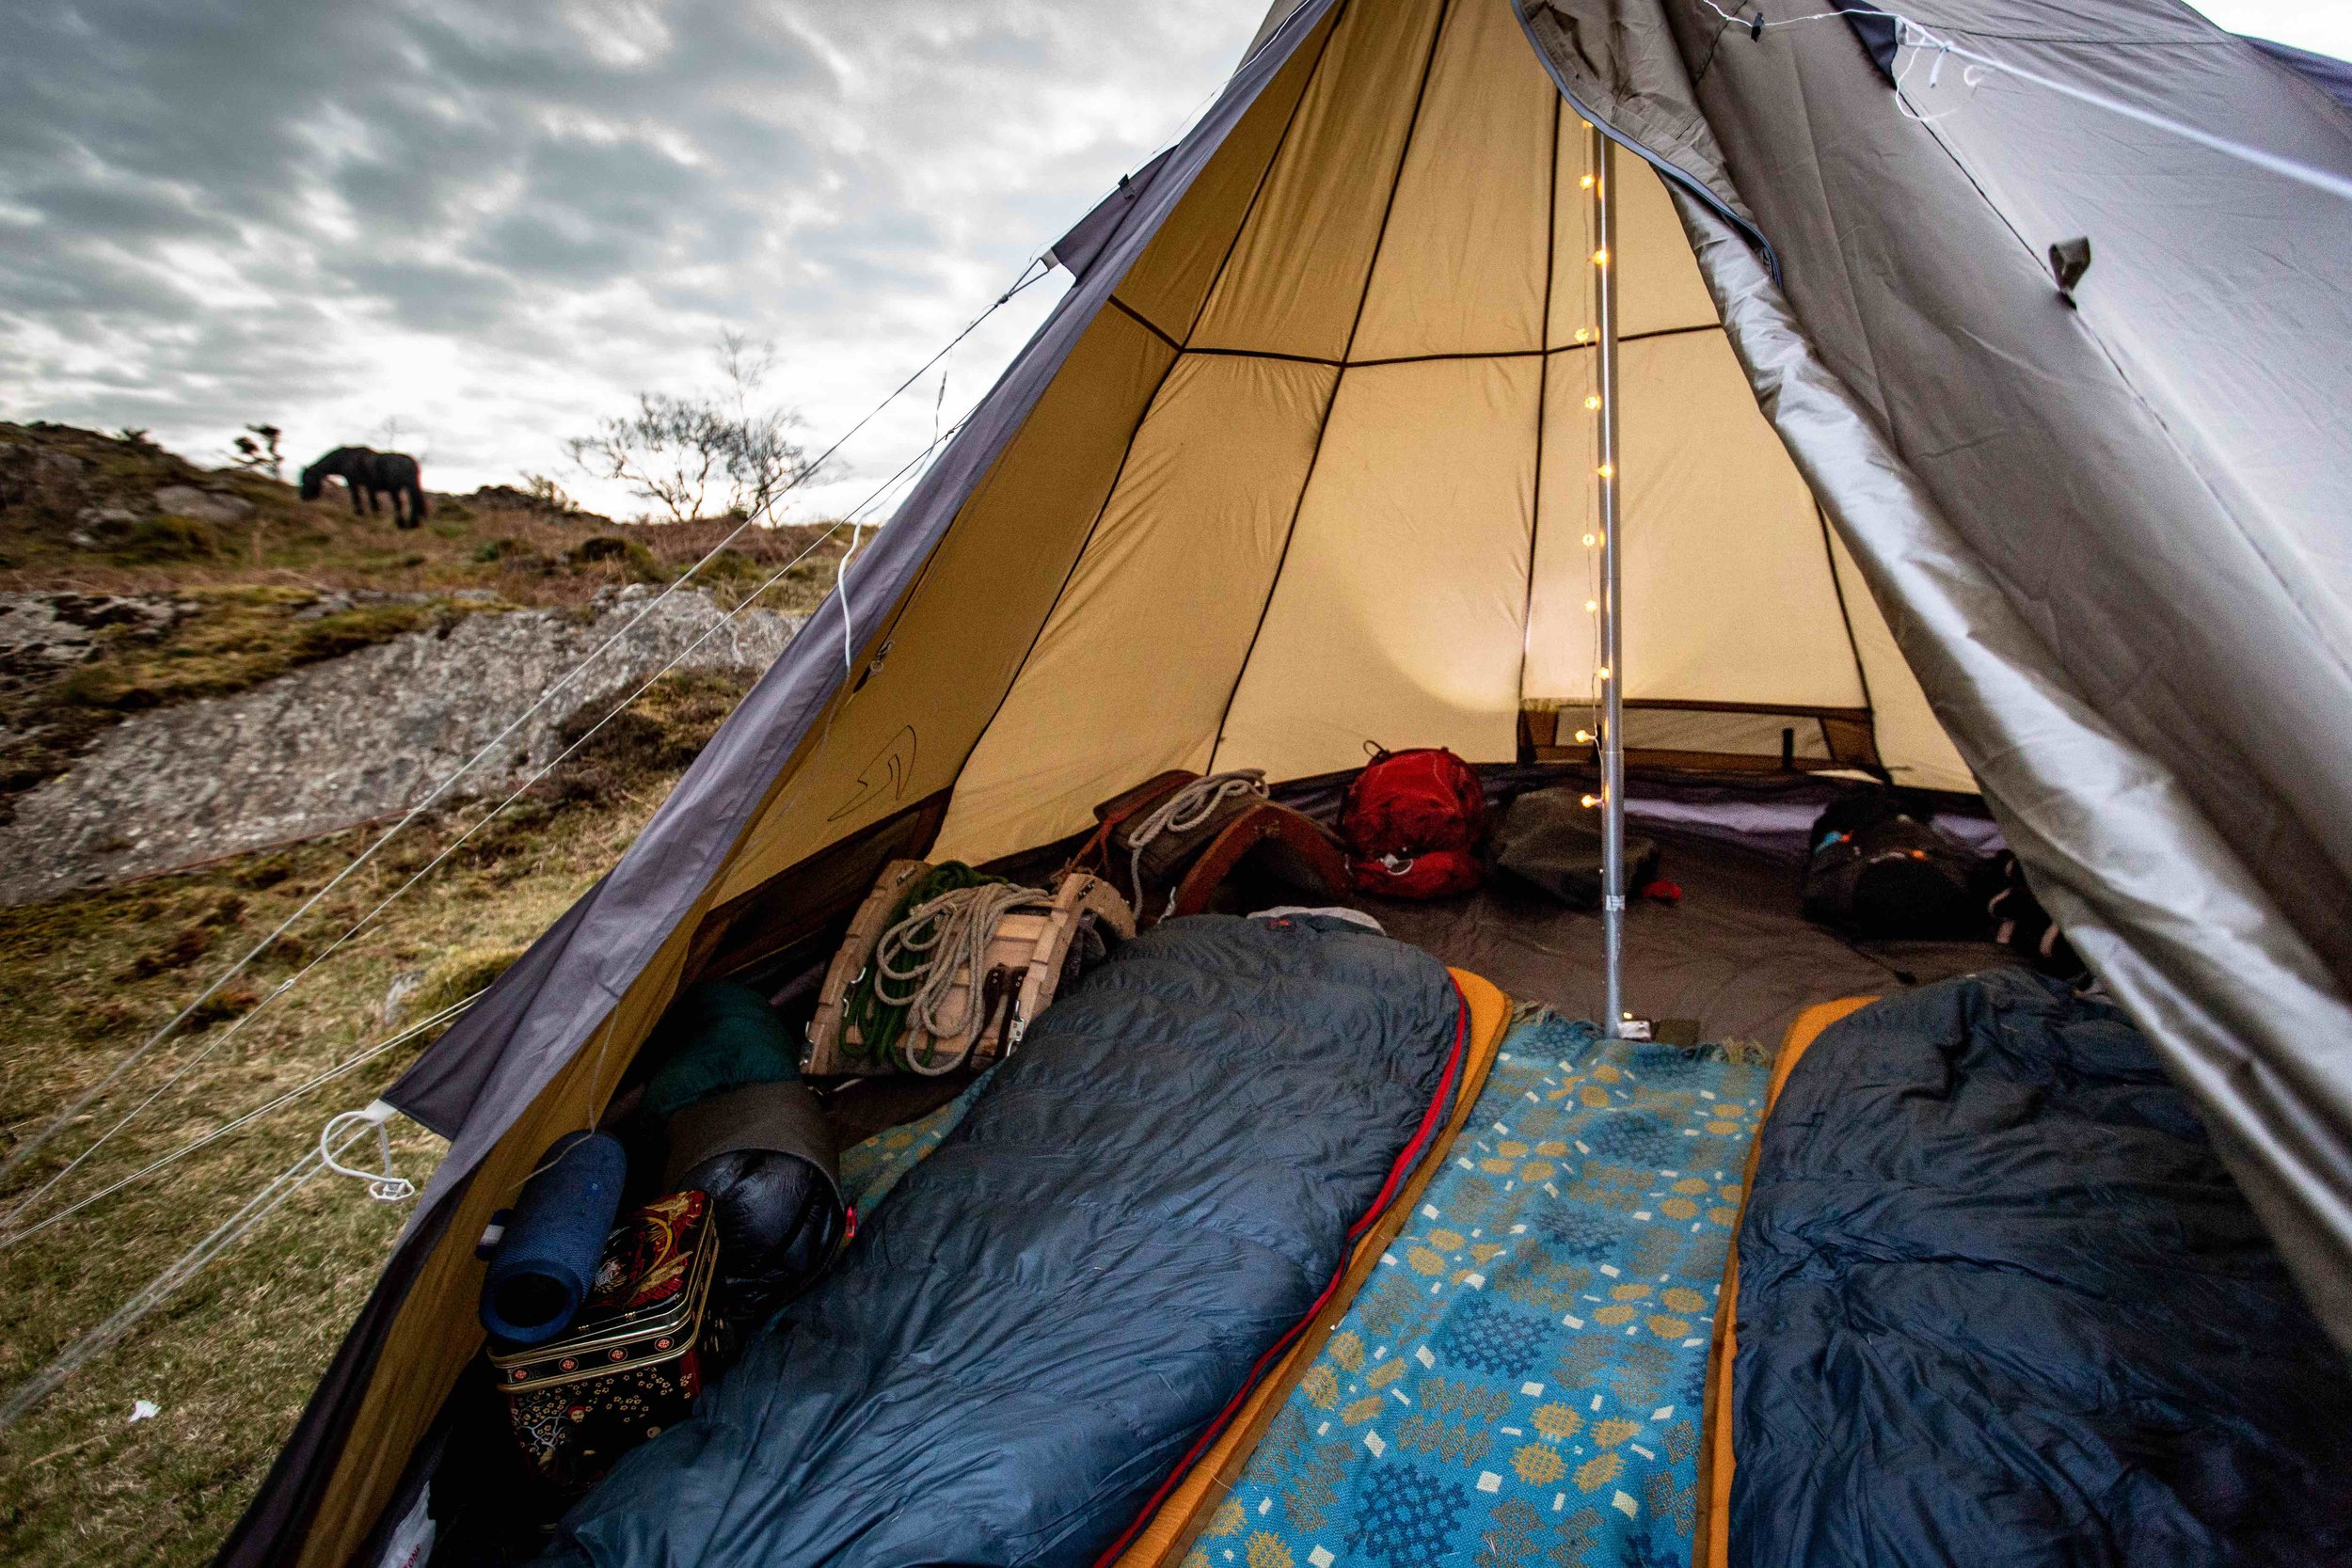 Space and comfort with the award-winning    Robens    technical tents, mattresses and sleeping bags